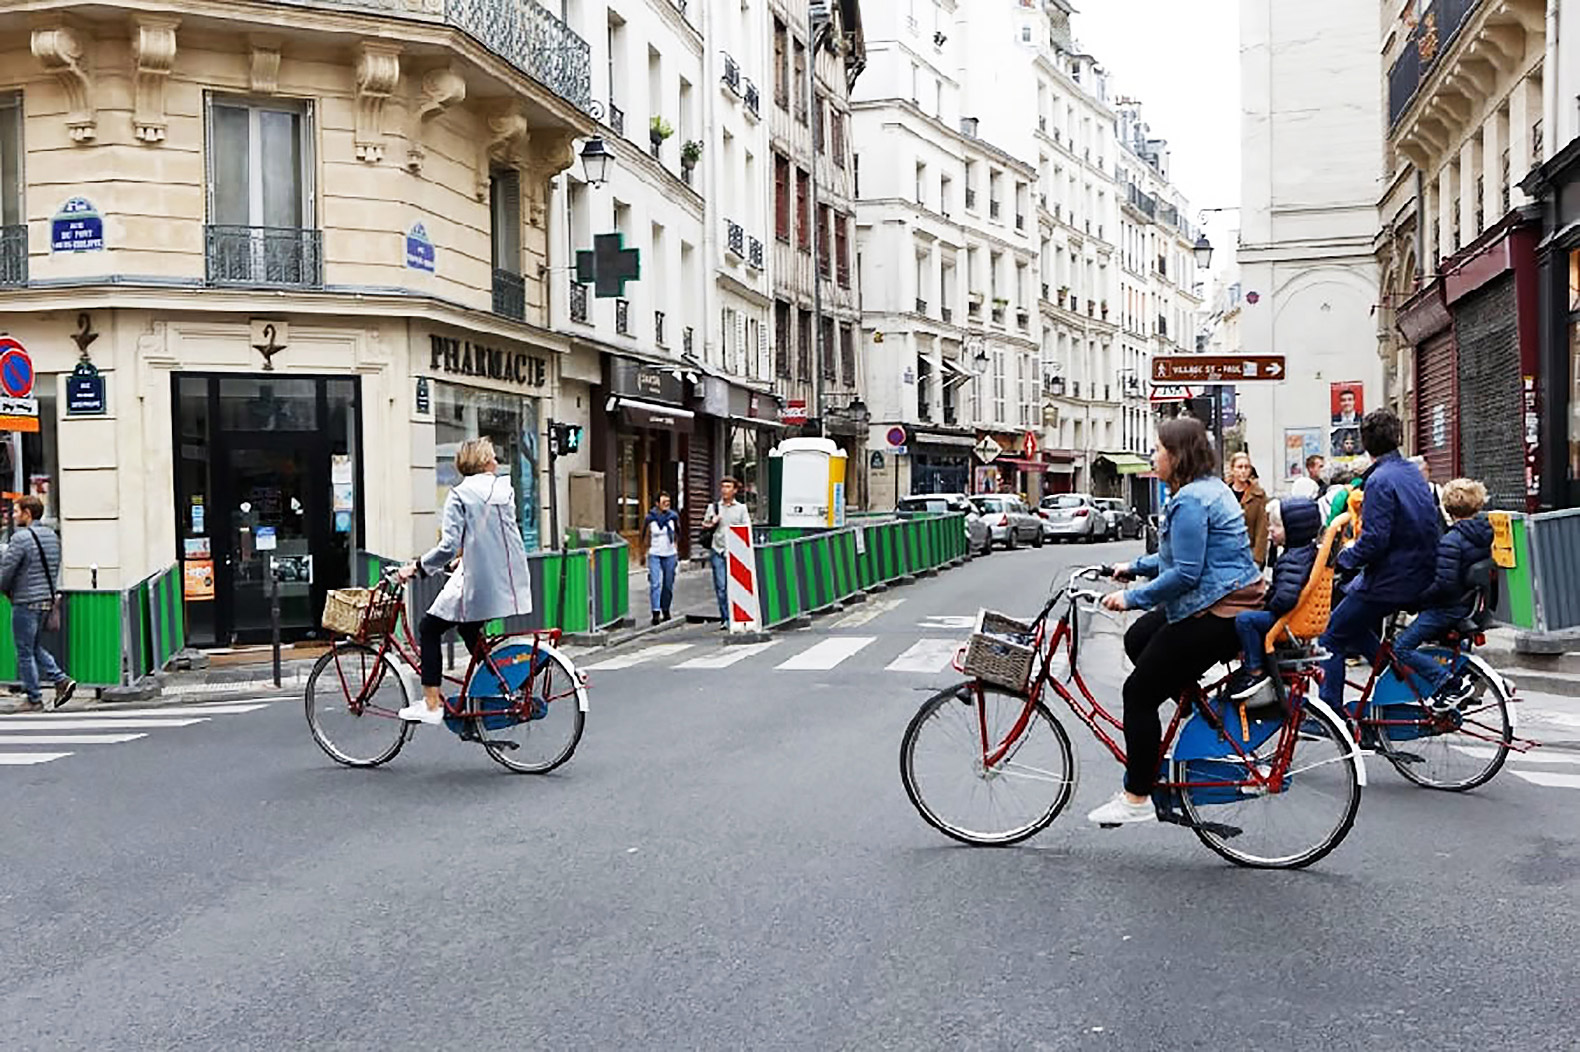 Paris banned all cars for a day to highlight pollution issues